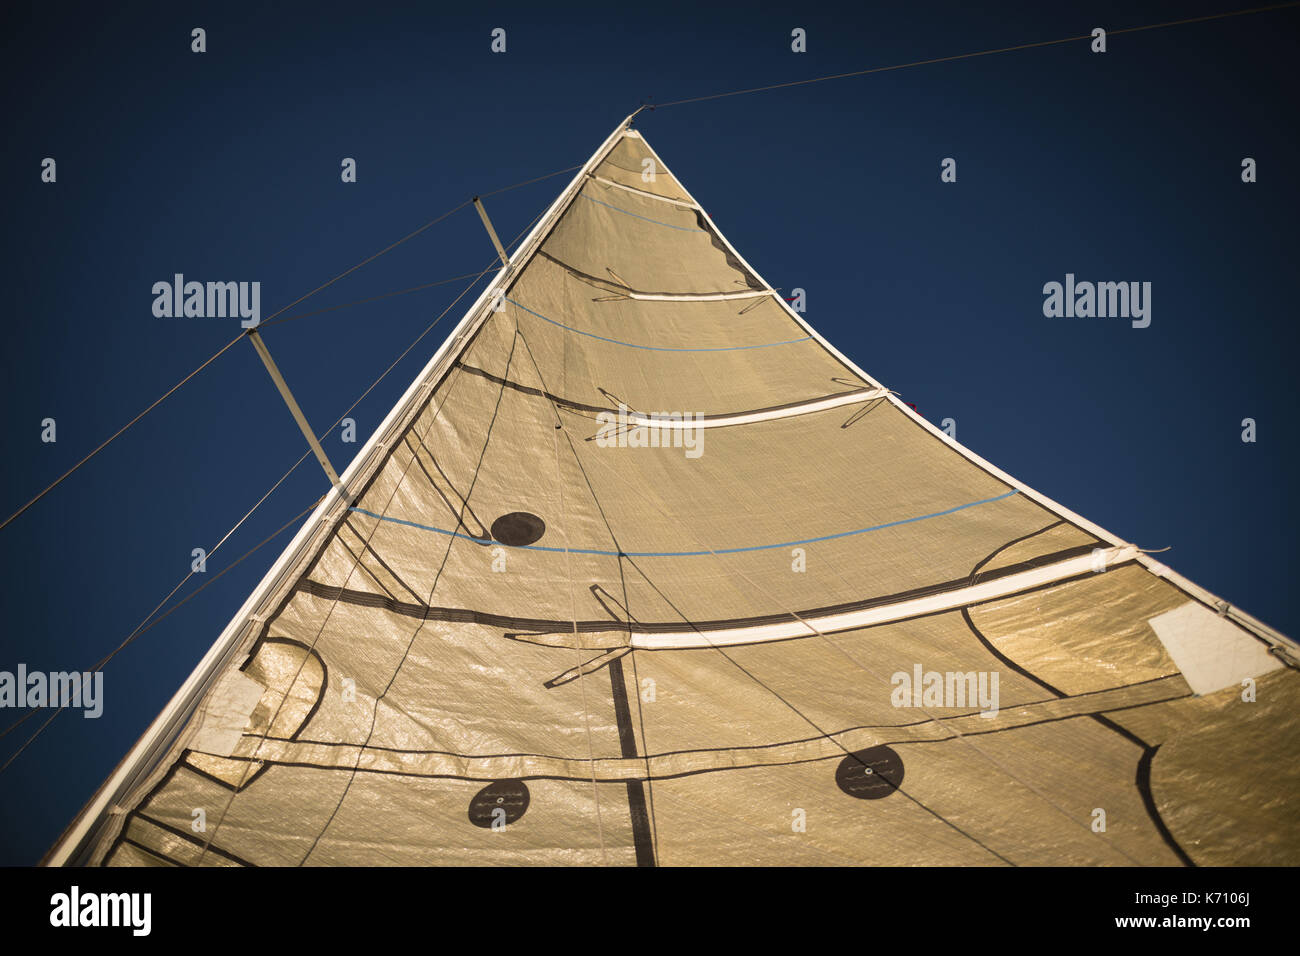 Close-up of sail of the boat - Stock Image